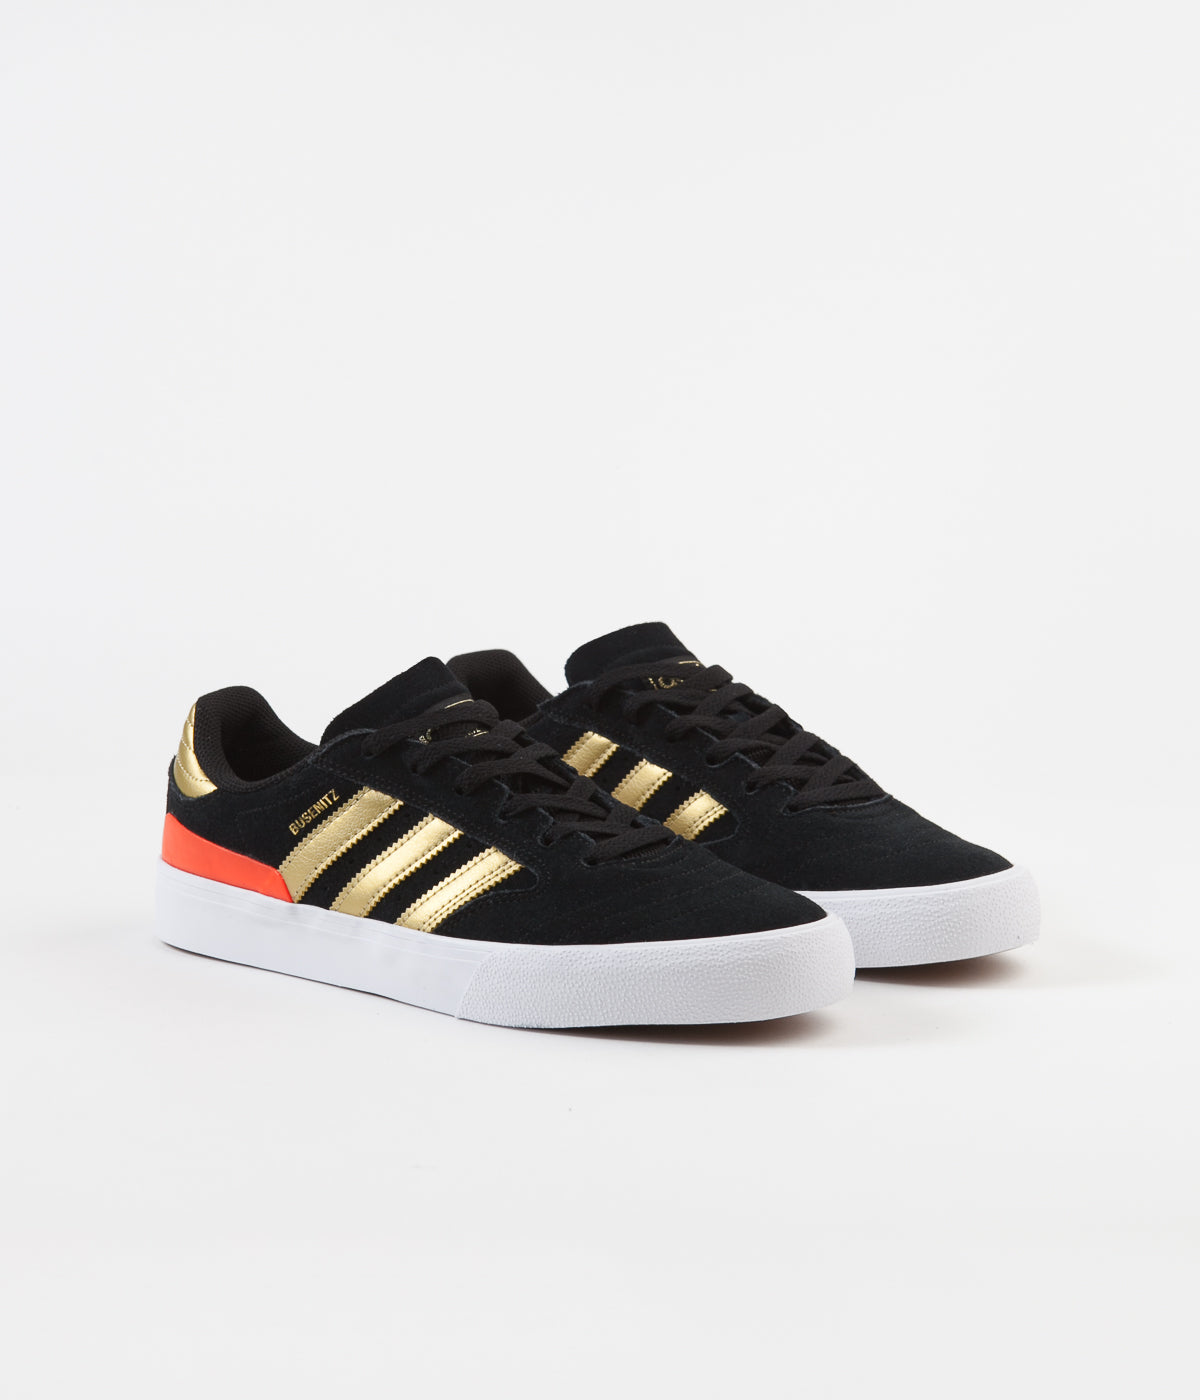 Adidas Busenitz Vulc II Shoes - Core Black / Gold Metallic / Solar Red